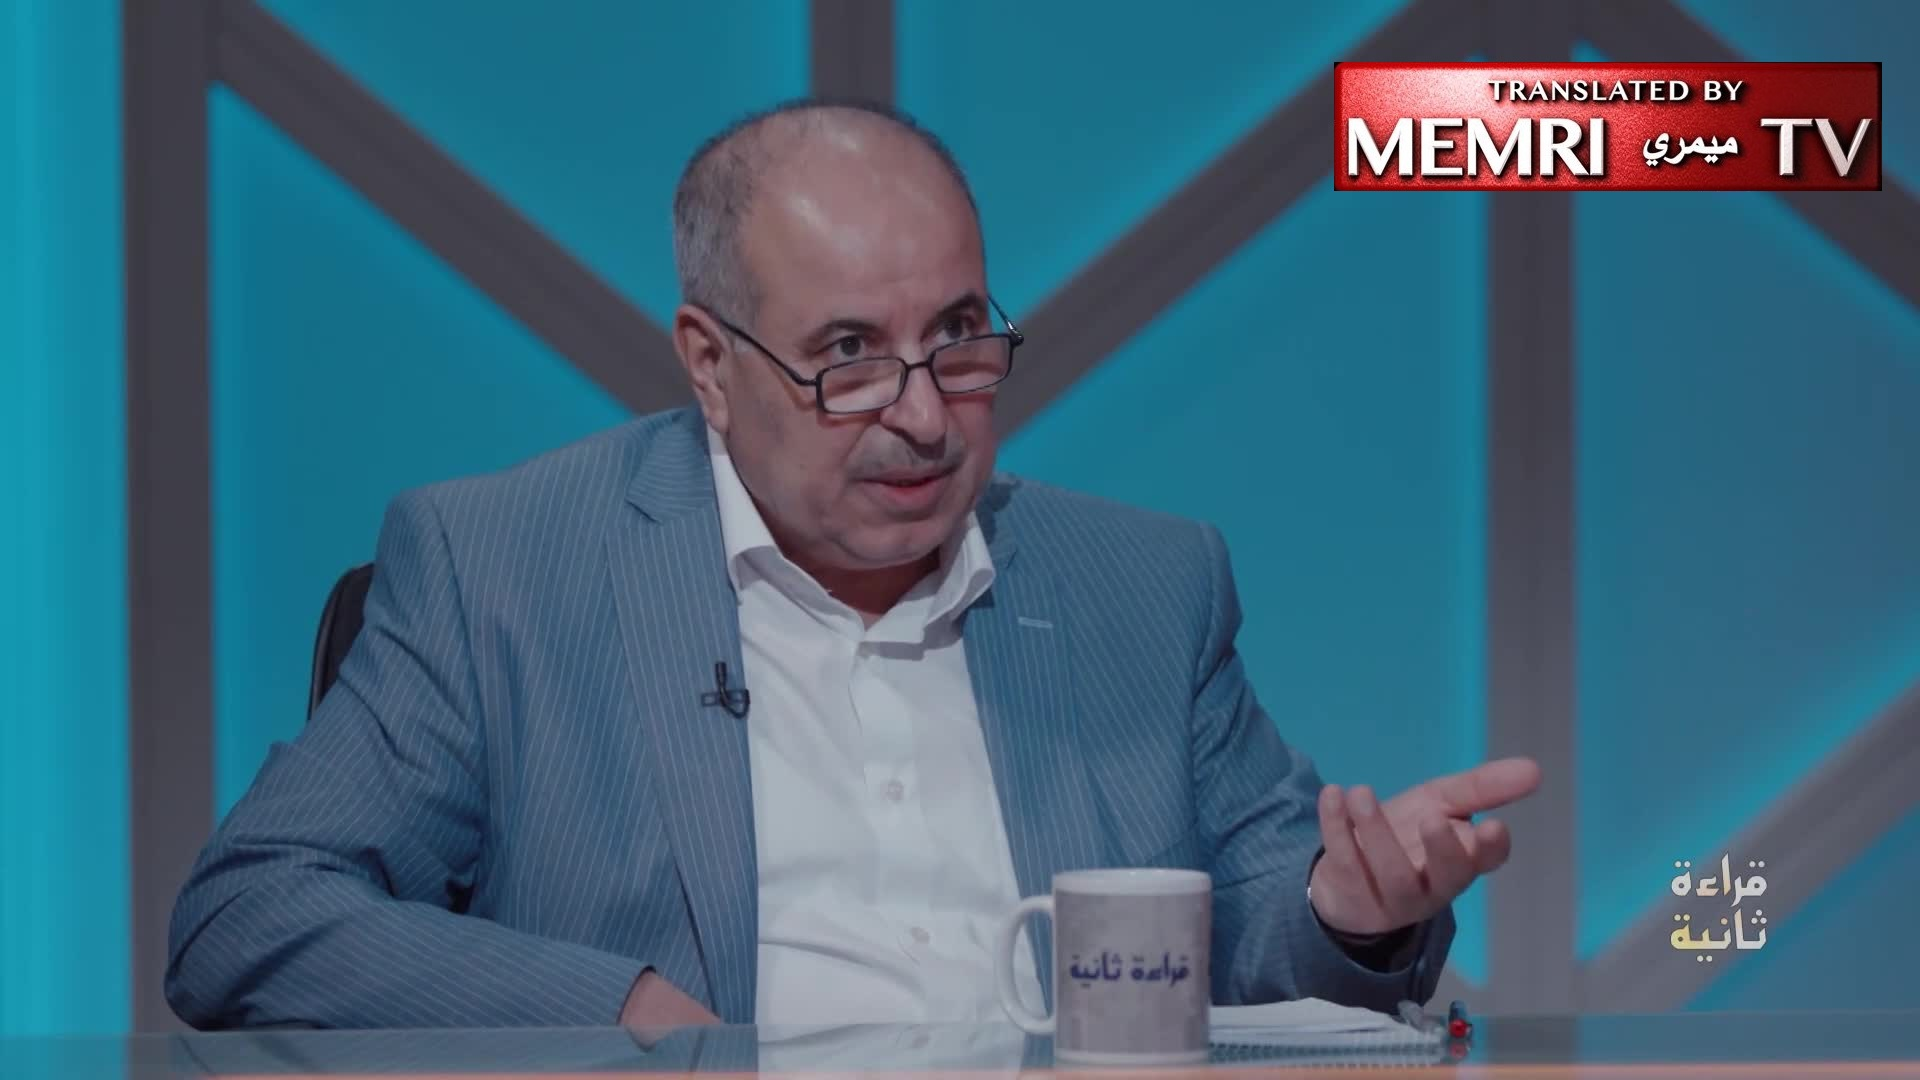 Iraqi Scholar Dr. Abdul Jabbar Al-Rifaee: Muslims' Small Contribution to Modern Sciences Is an Indication That We Must Re-Examine Our Heritage